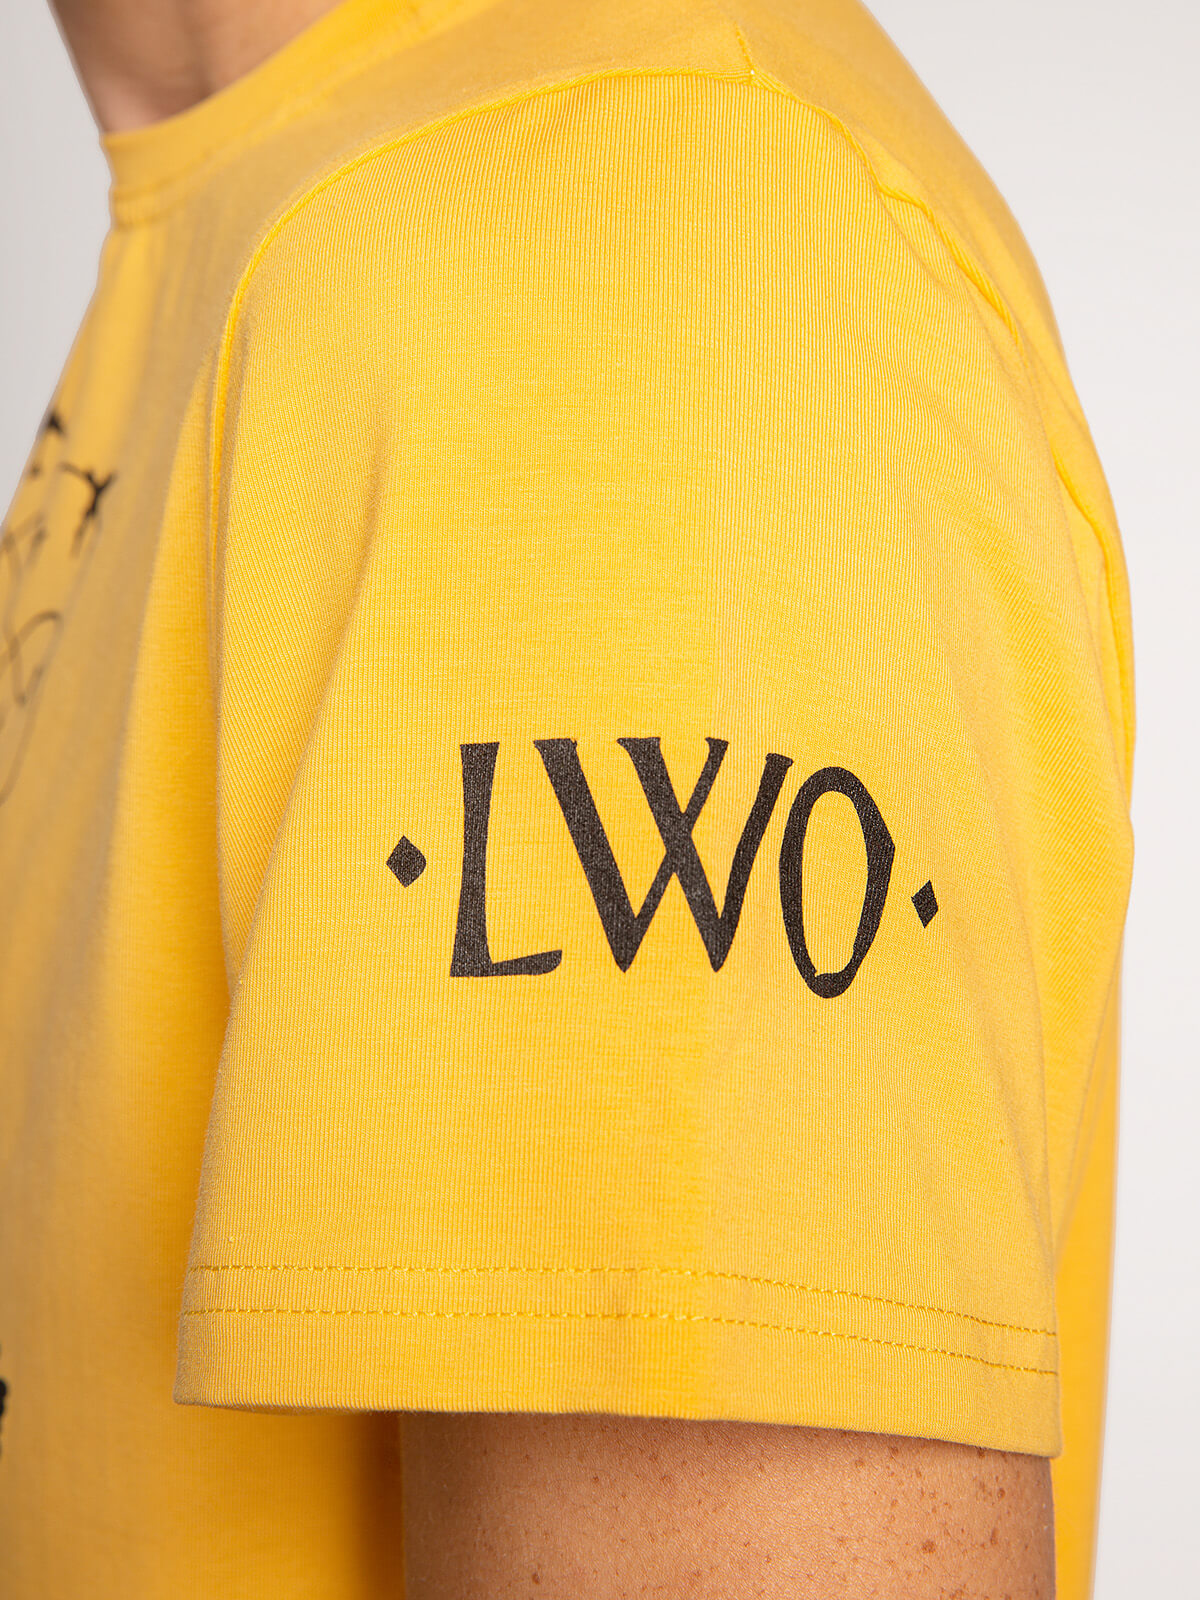 Men's T-Shirt Danylo. Color yellow.  Size worn by the model: M.